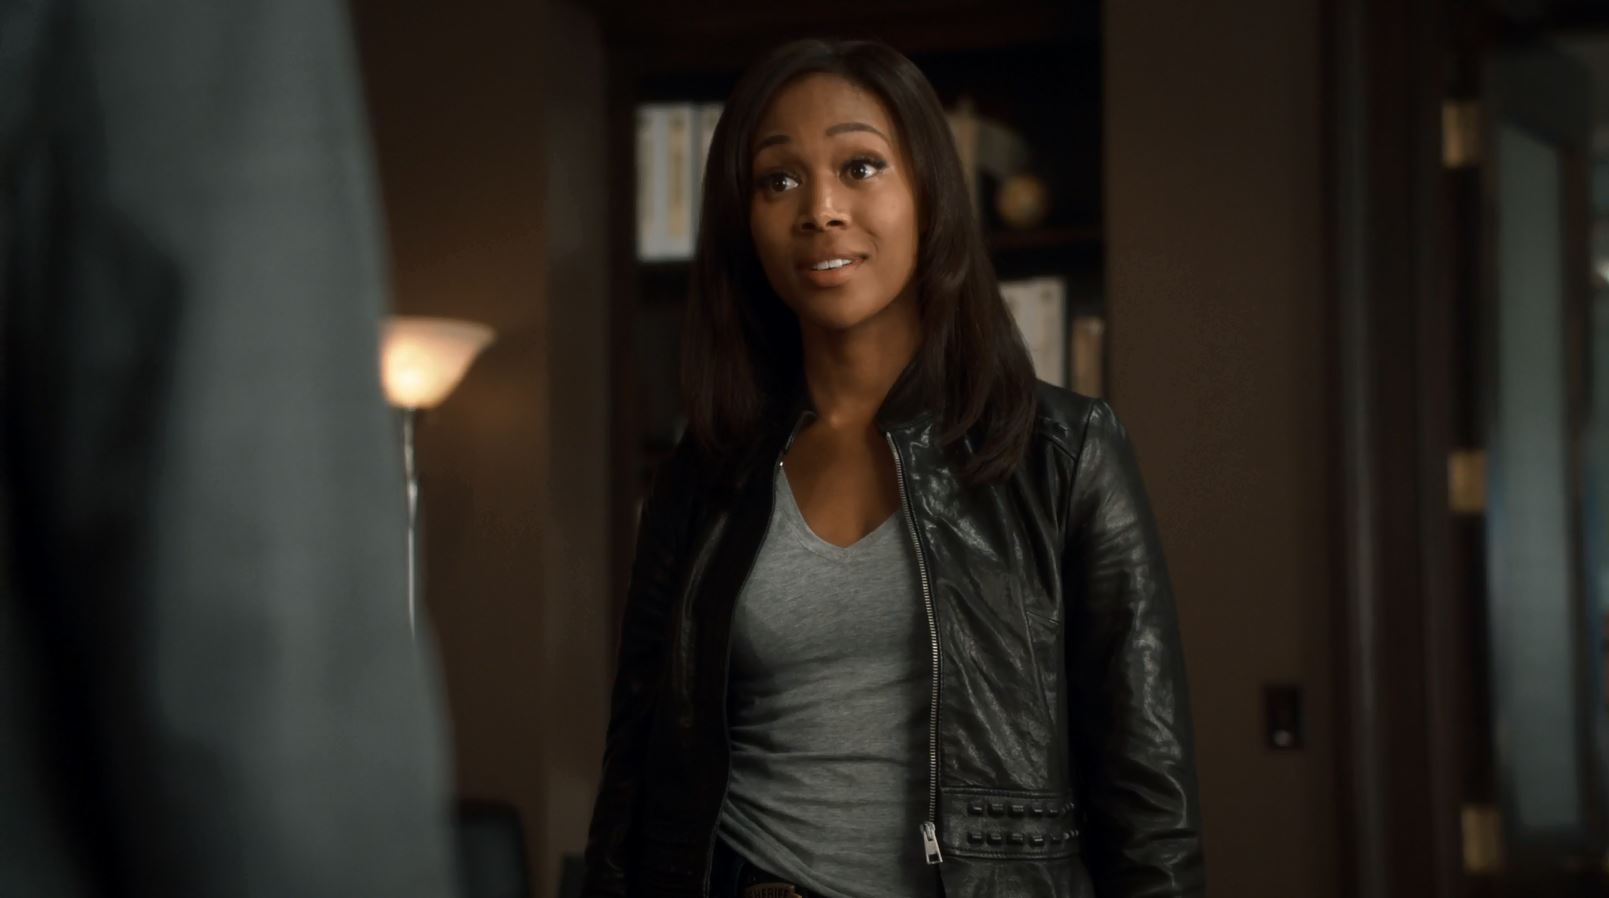 Sleepy Hollow S2Ep2 The Kindred Review - Abbie meets the nerw sherriff